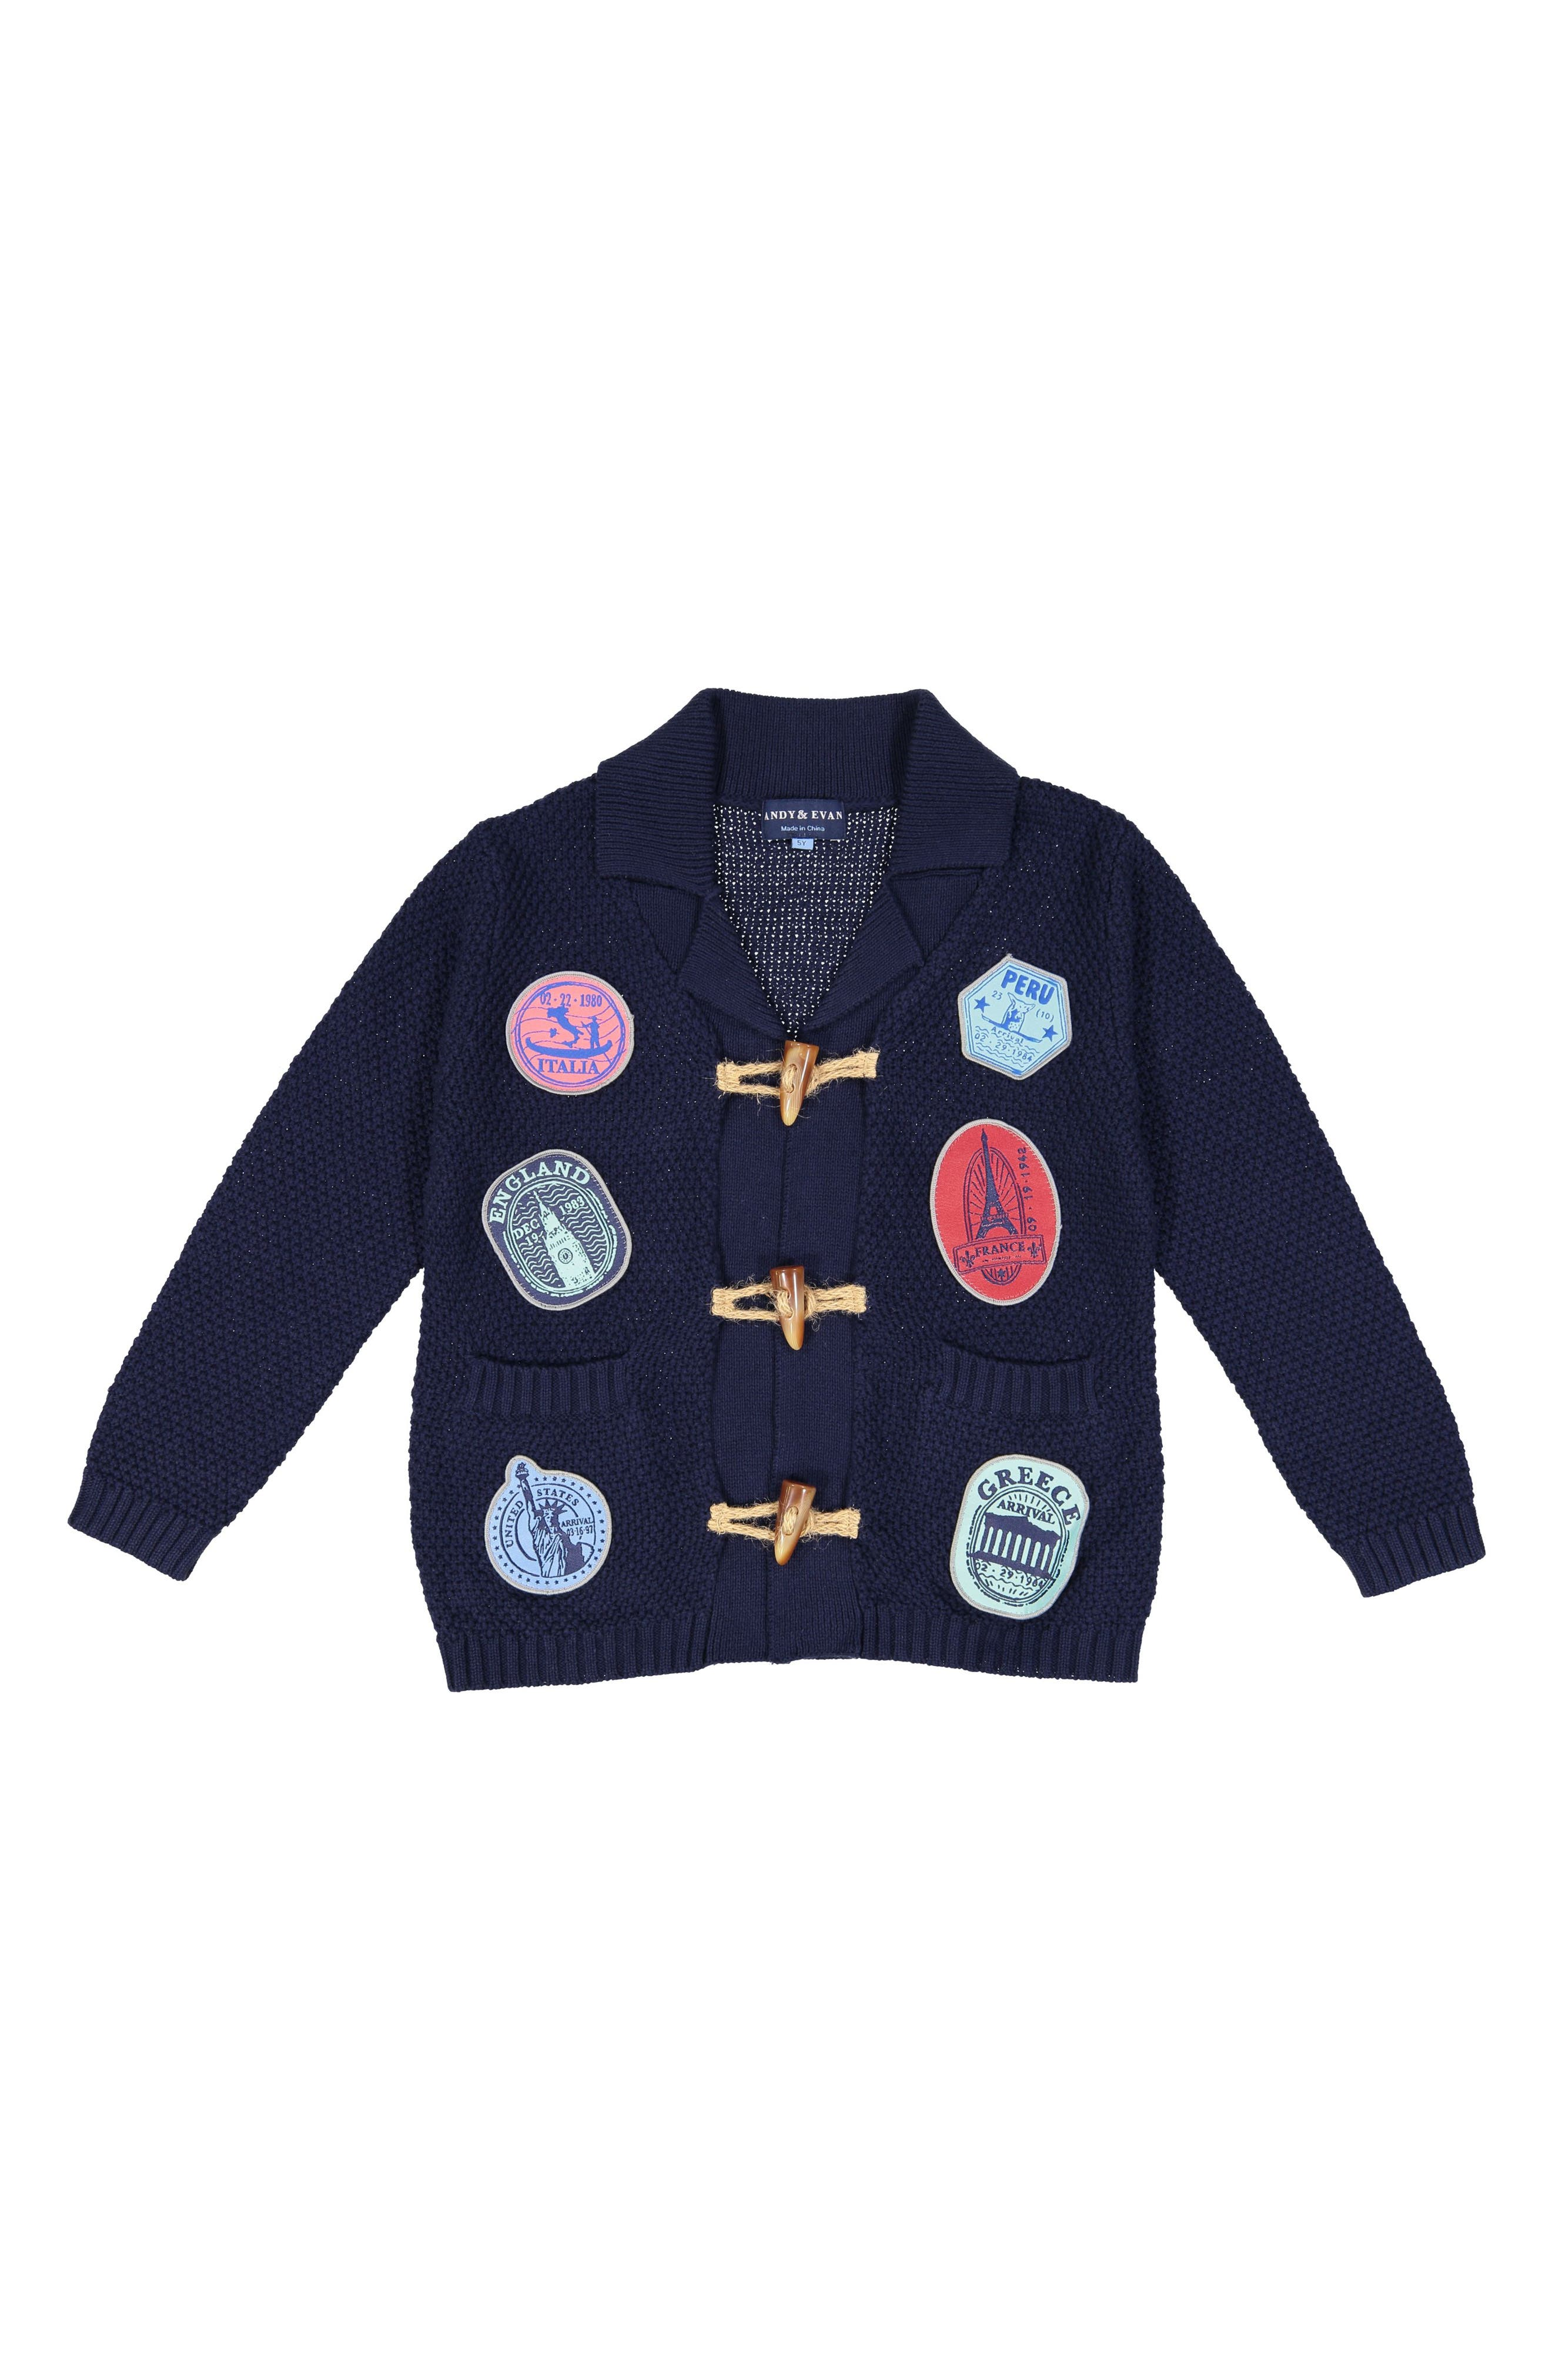 Andy & Evan Toggle Cardigan (Toddler Boys)